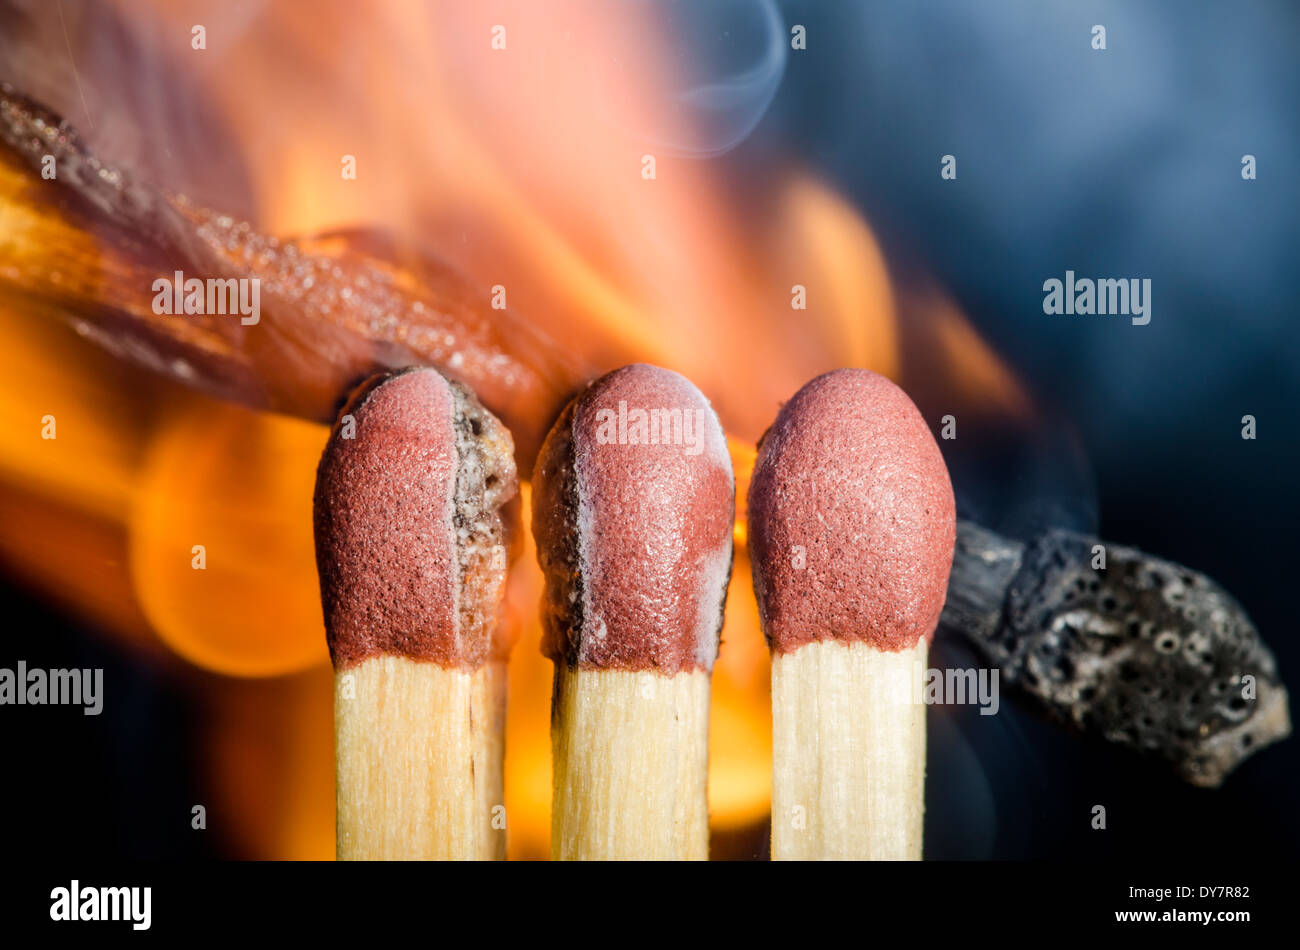 Lighting matches. 3 matches being lit from behind by another match, on a black background. - Stock Image